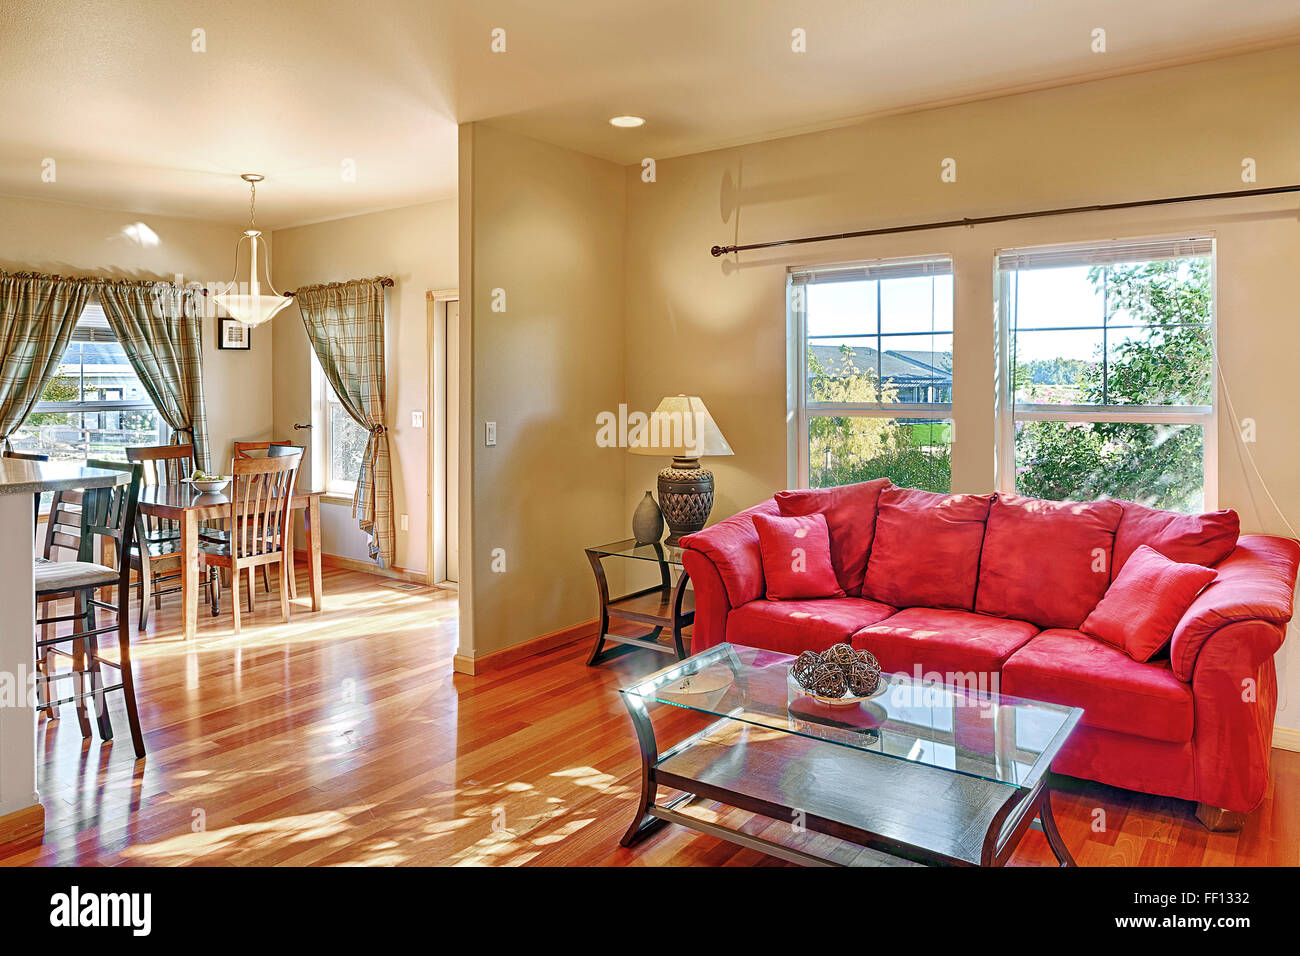 Sofa and coffee table in living room - Stock Image